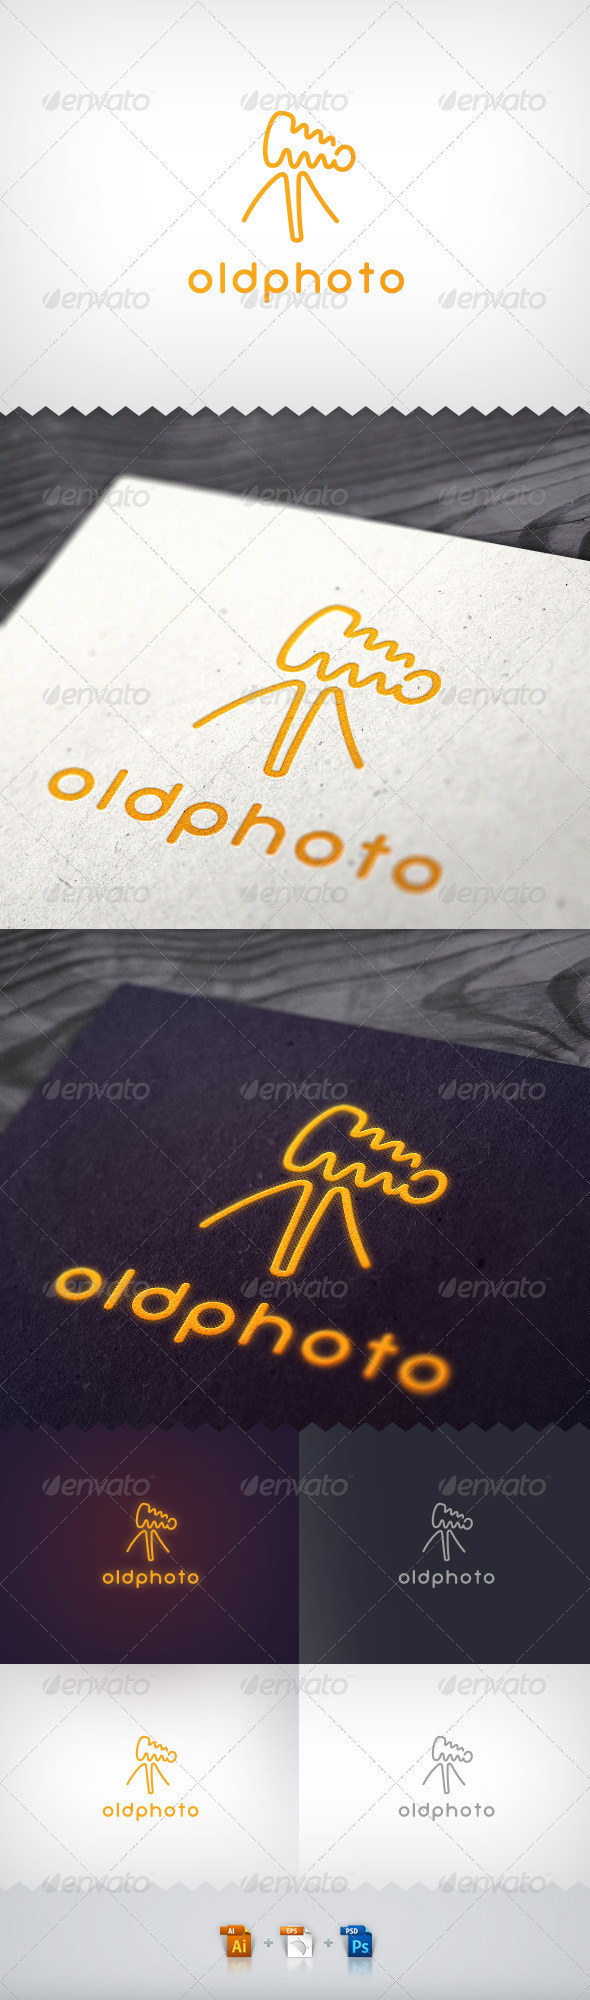 Old Photo Camera Neon Logo - Objects Logo Templates